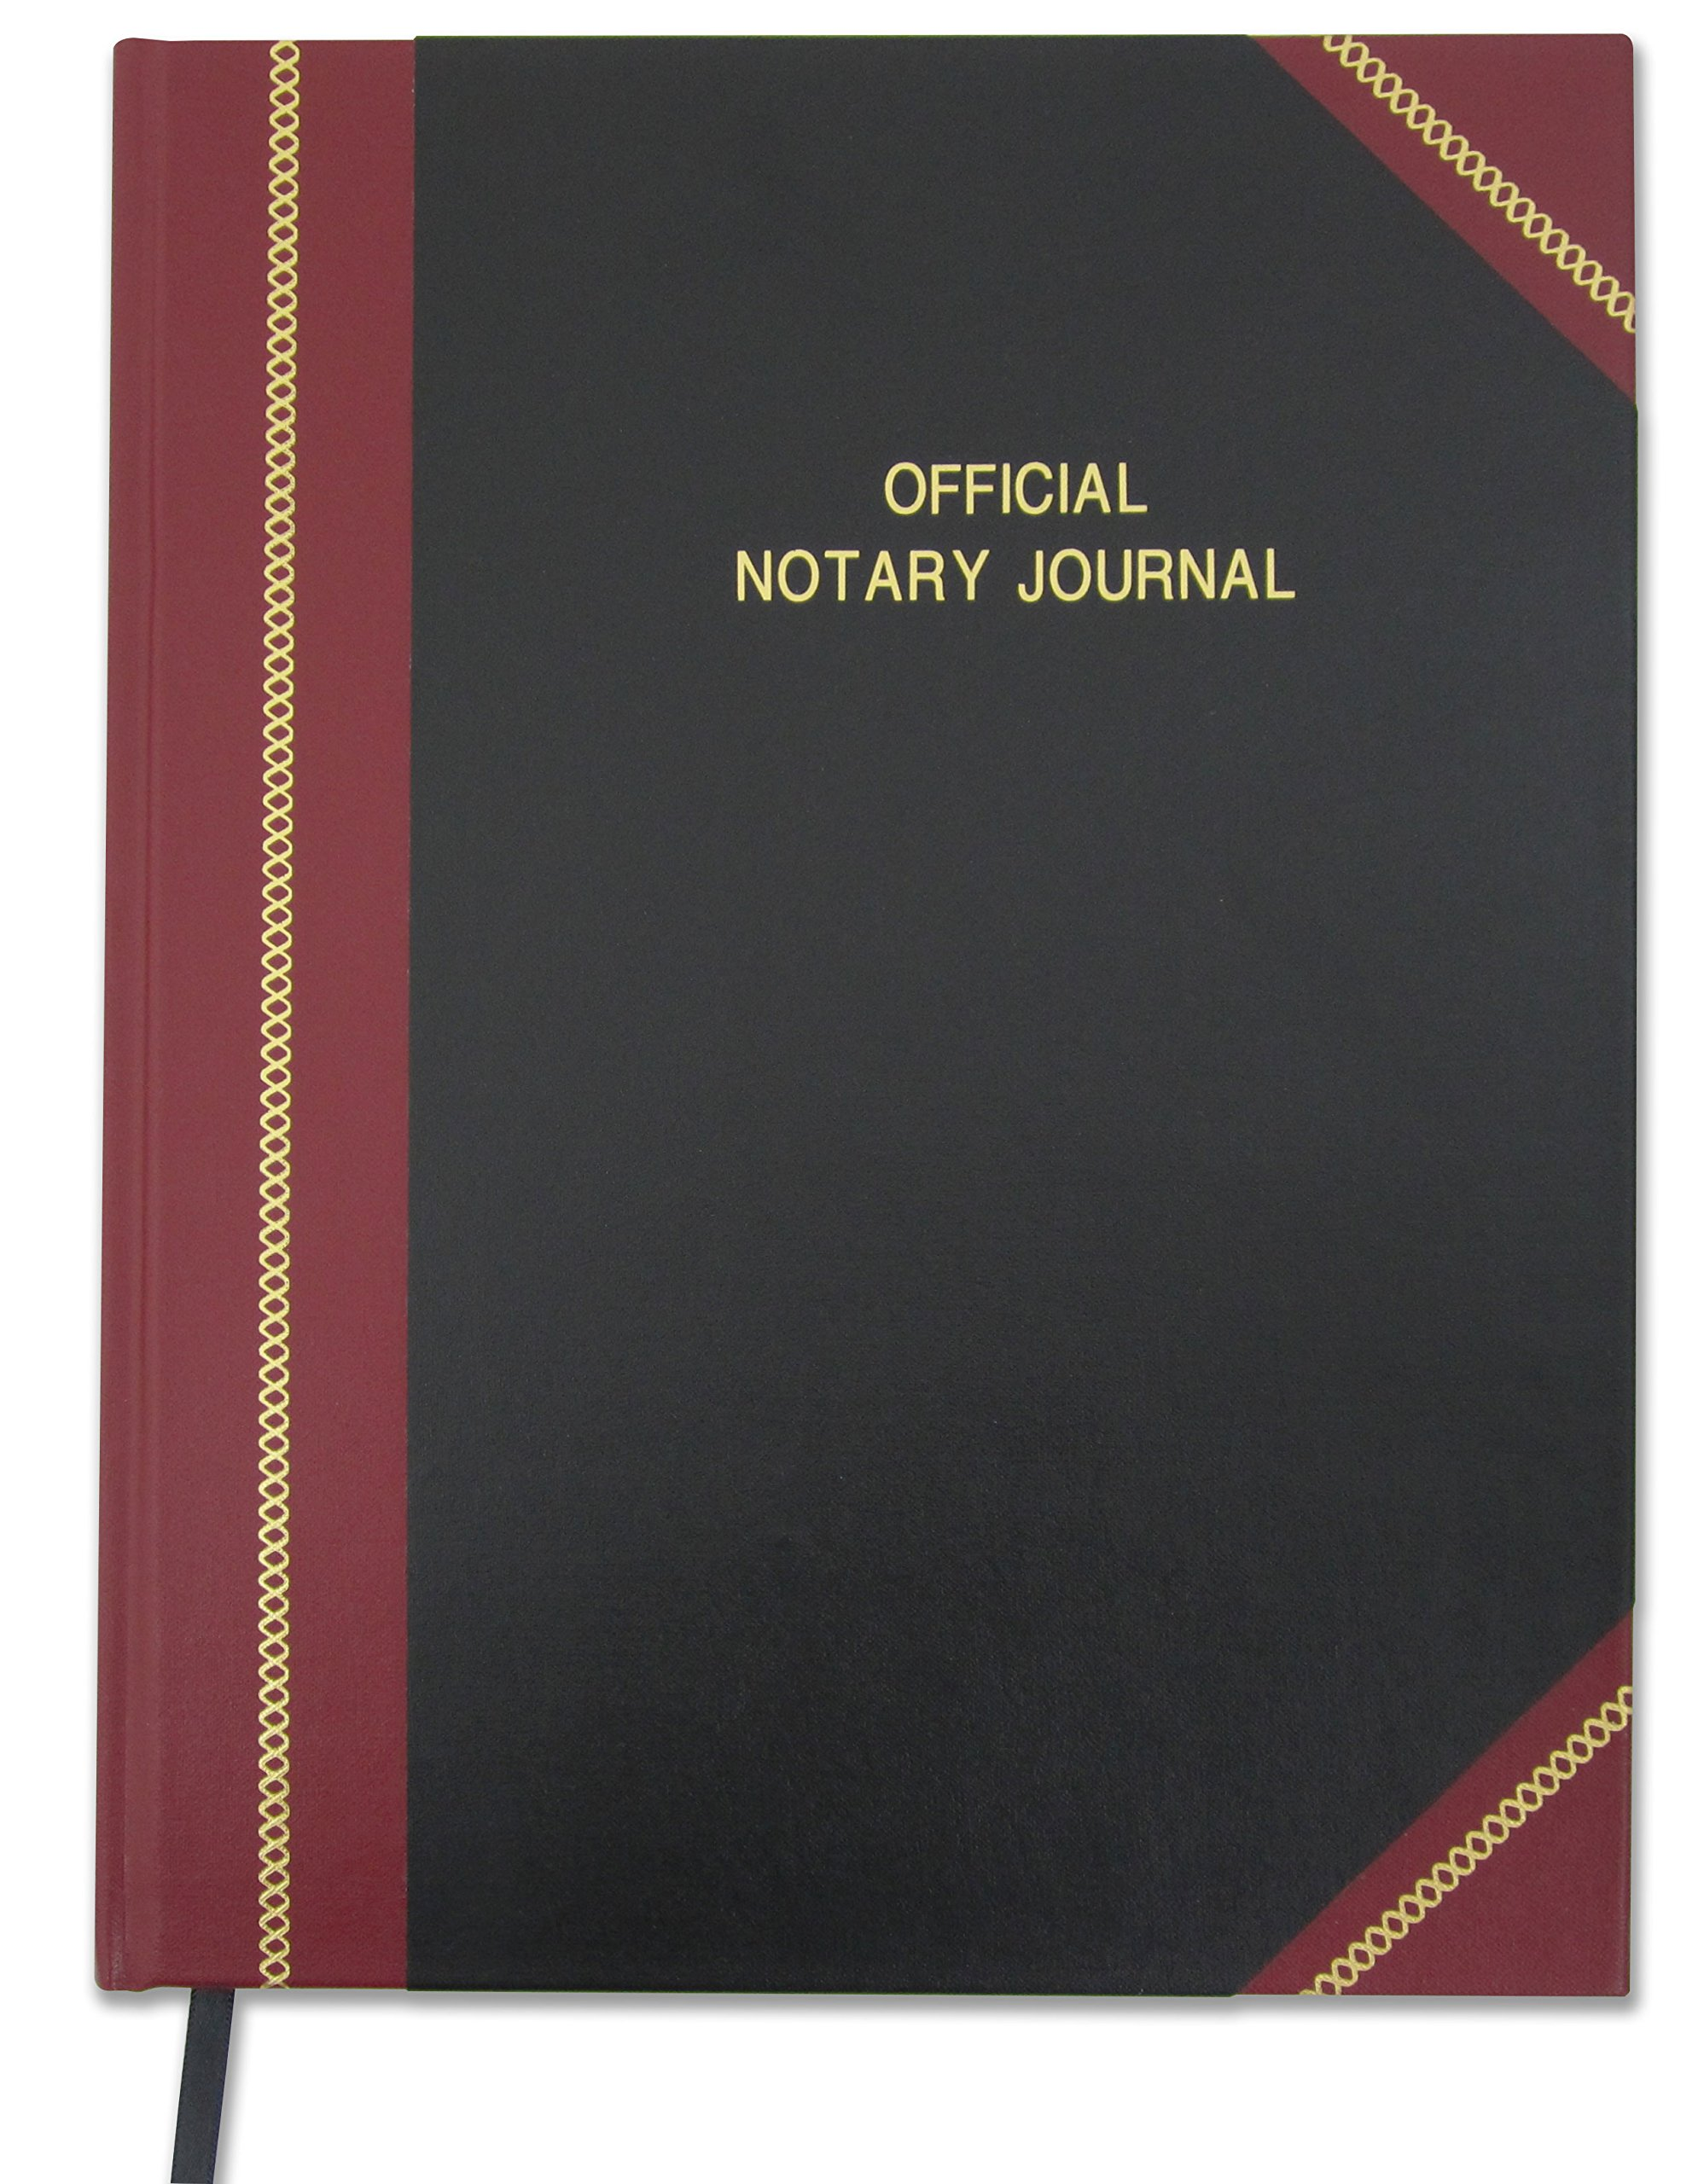 BookFactory Official Notary Journal/Log Book 168 Pages 8.5'' X 11'' 668 Entries 49 of 50 State Journal of Notarial Acts, Black and Burgundy Cover, Hardbound, (LOG-168-7CS-LKMST71(Notary))